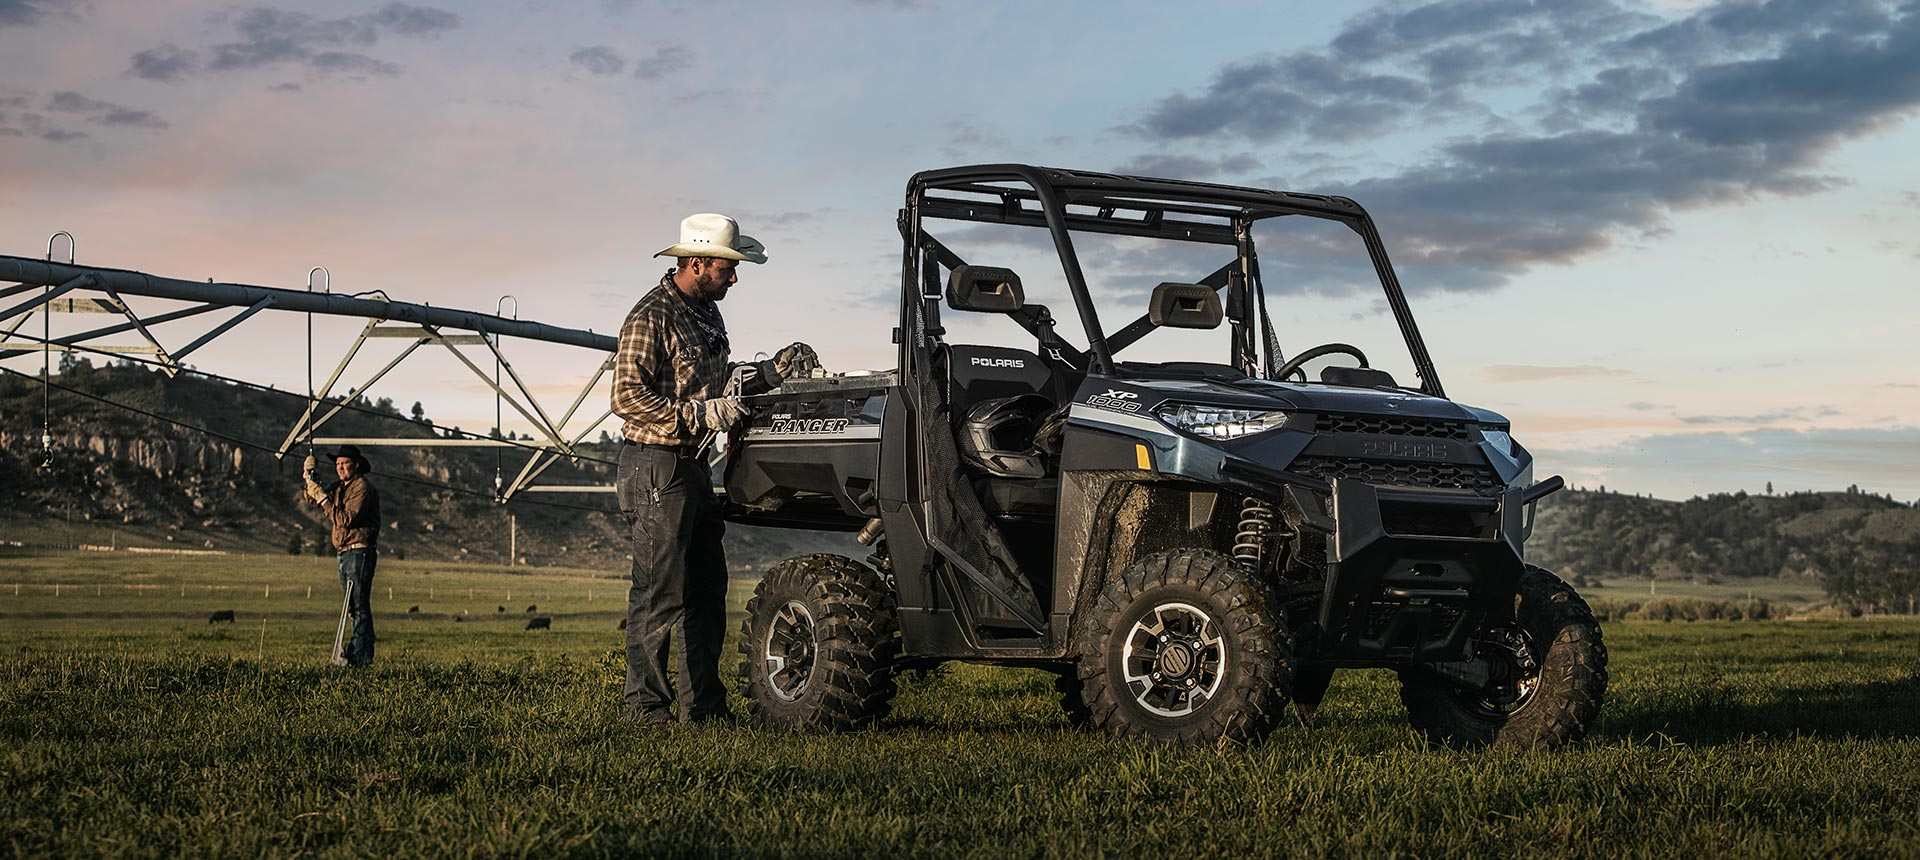 2019 Polaris Ranger XP 1000 EPS in Logan, Utah - Photo 10